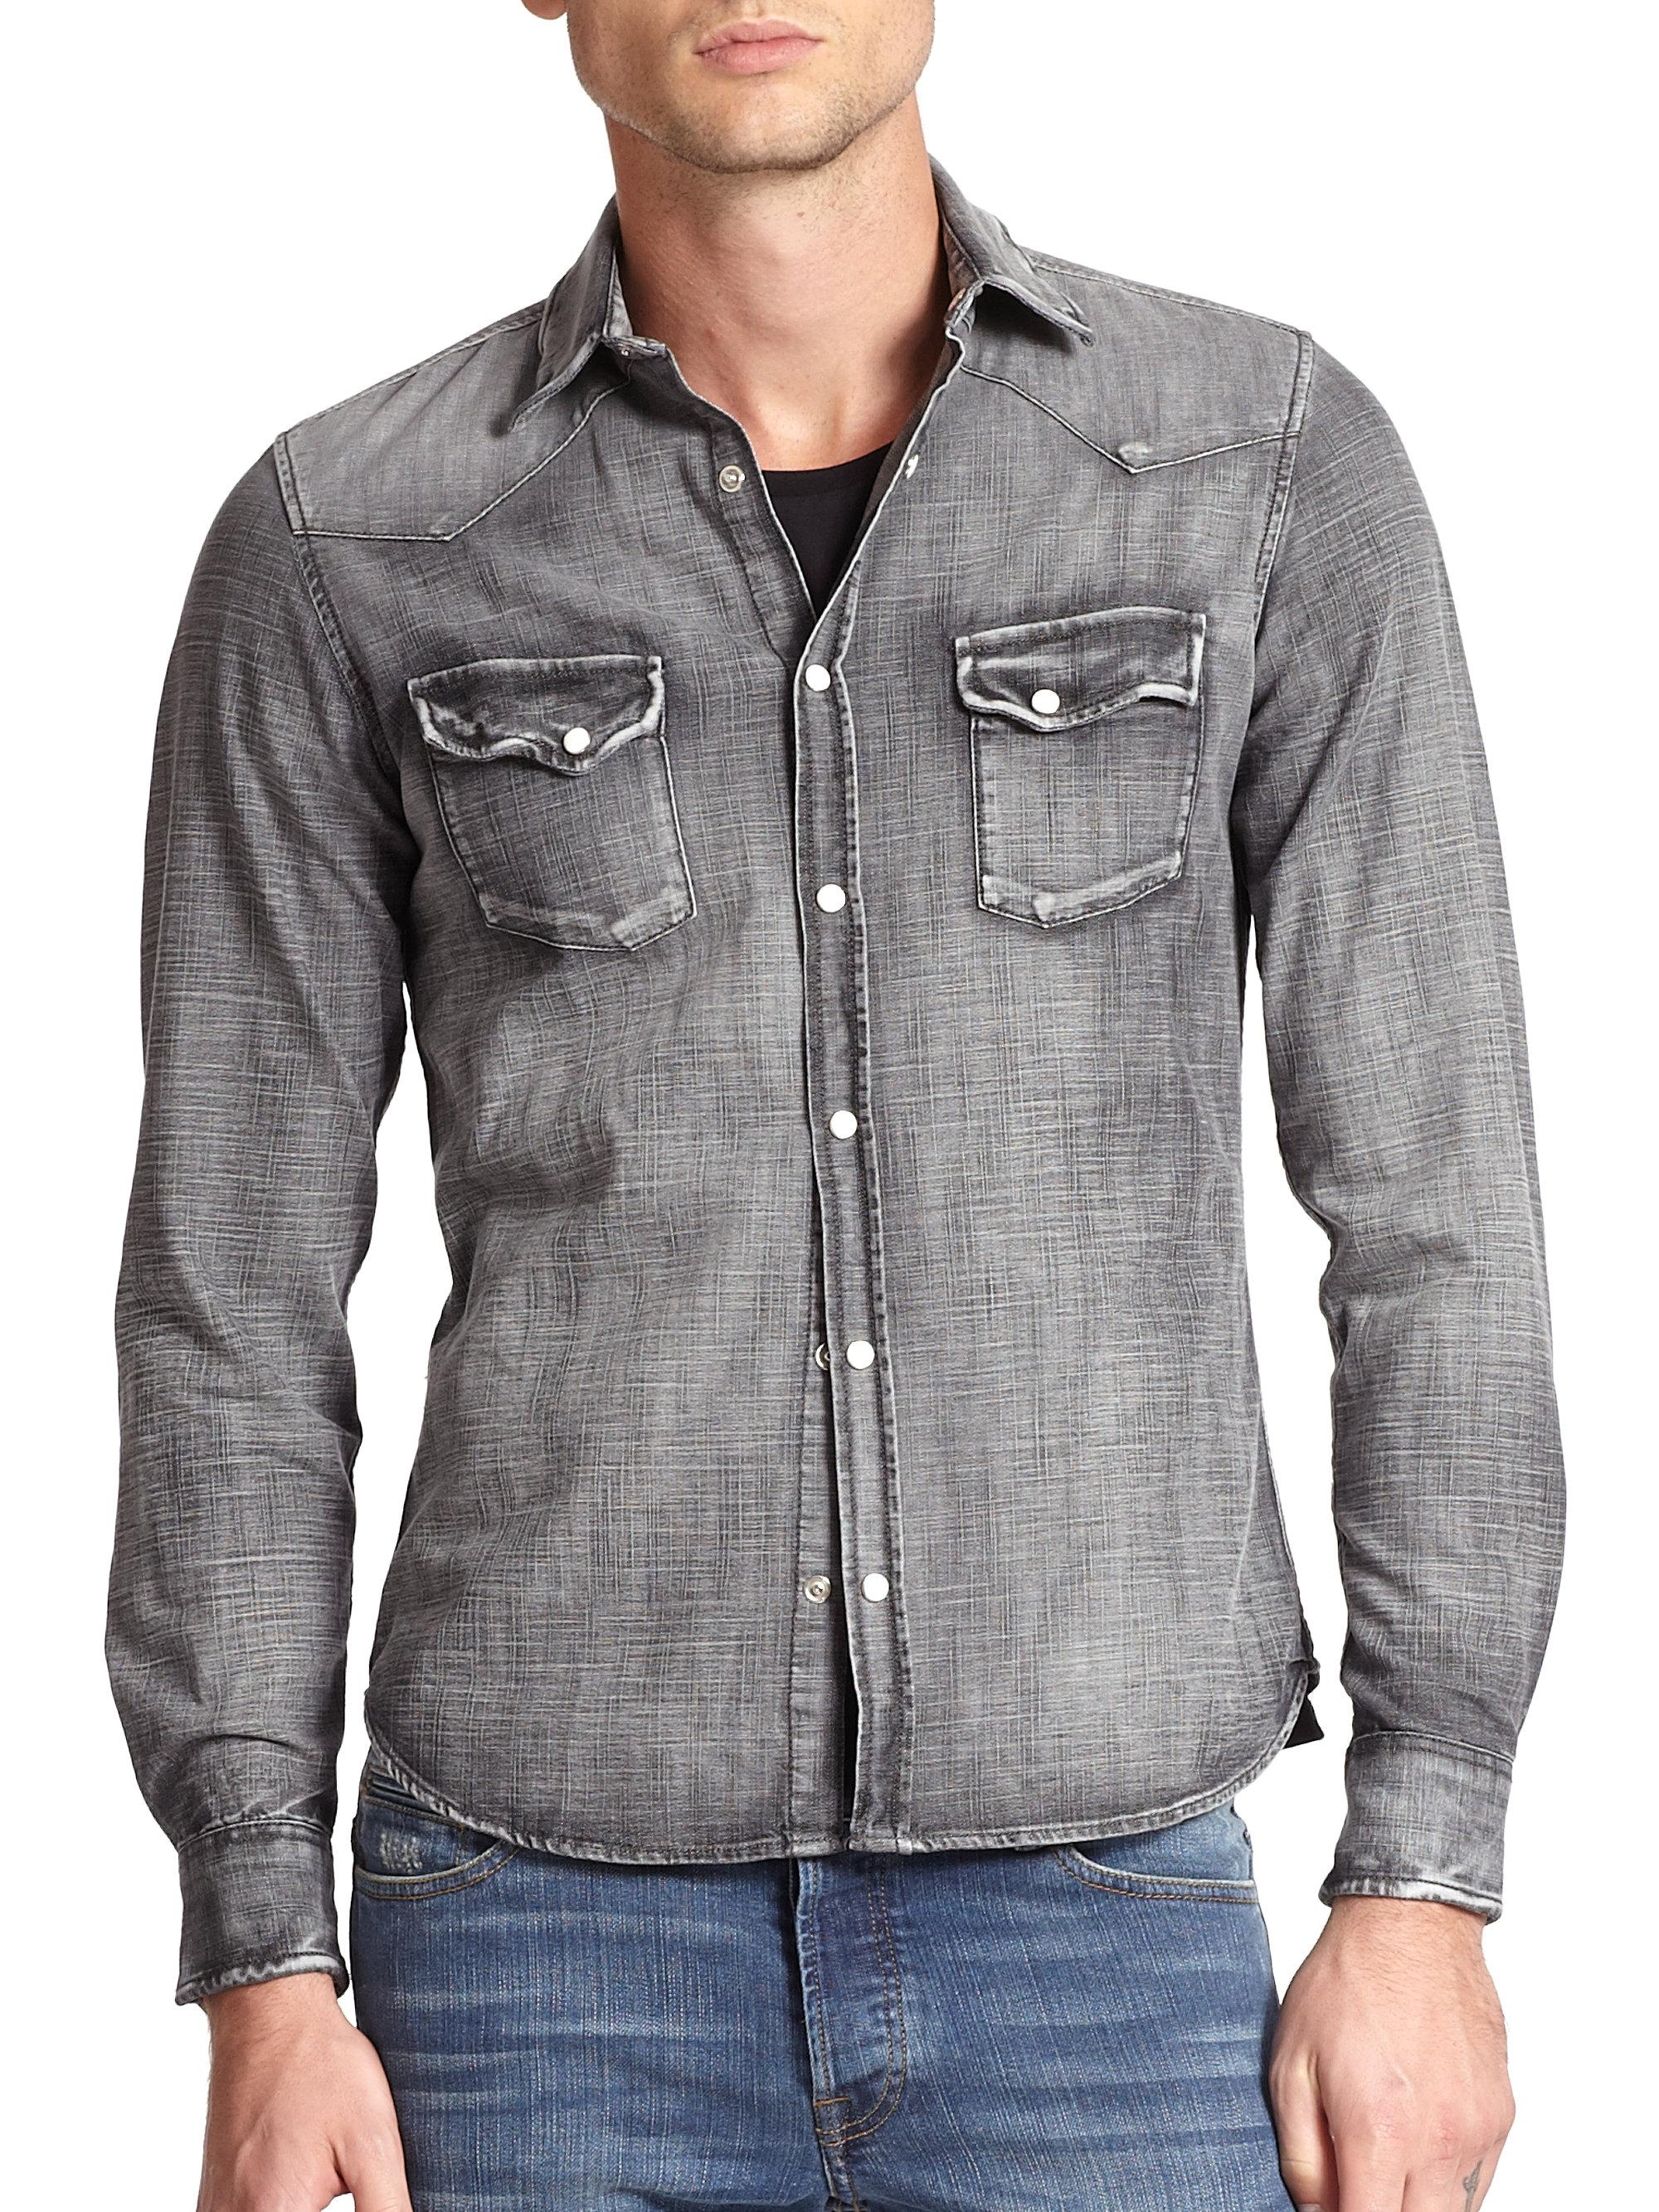 a7aa5776bfc The Kooples Dark Wash Denim Button-down Shirt in Gray for Men - Lyst